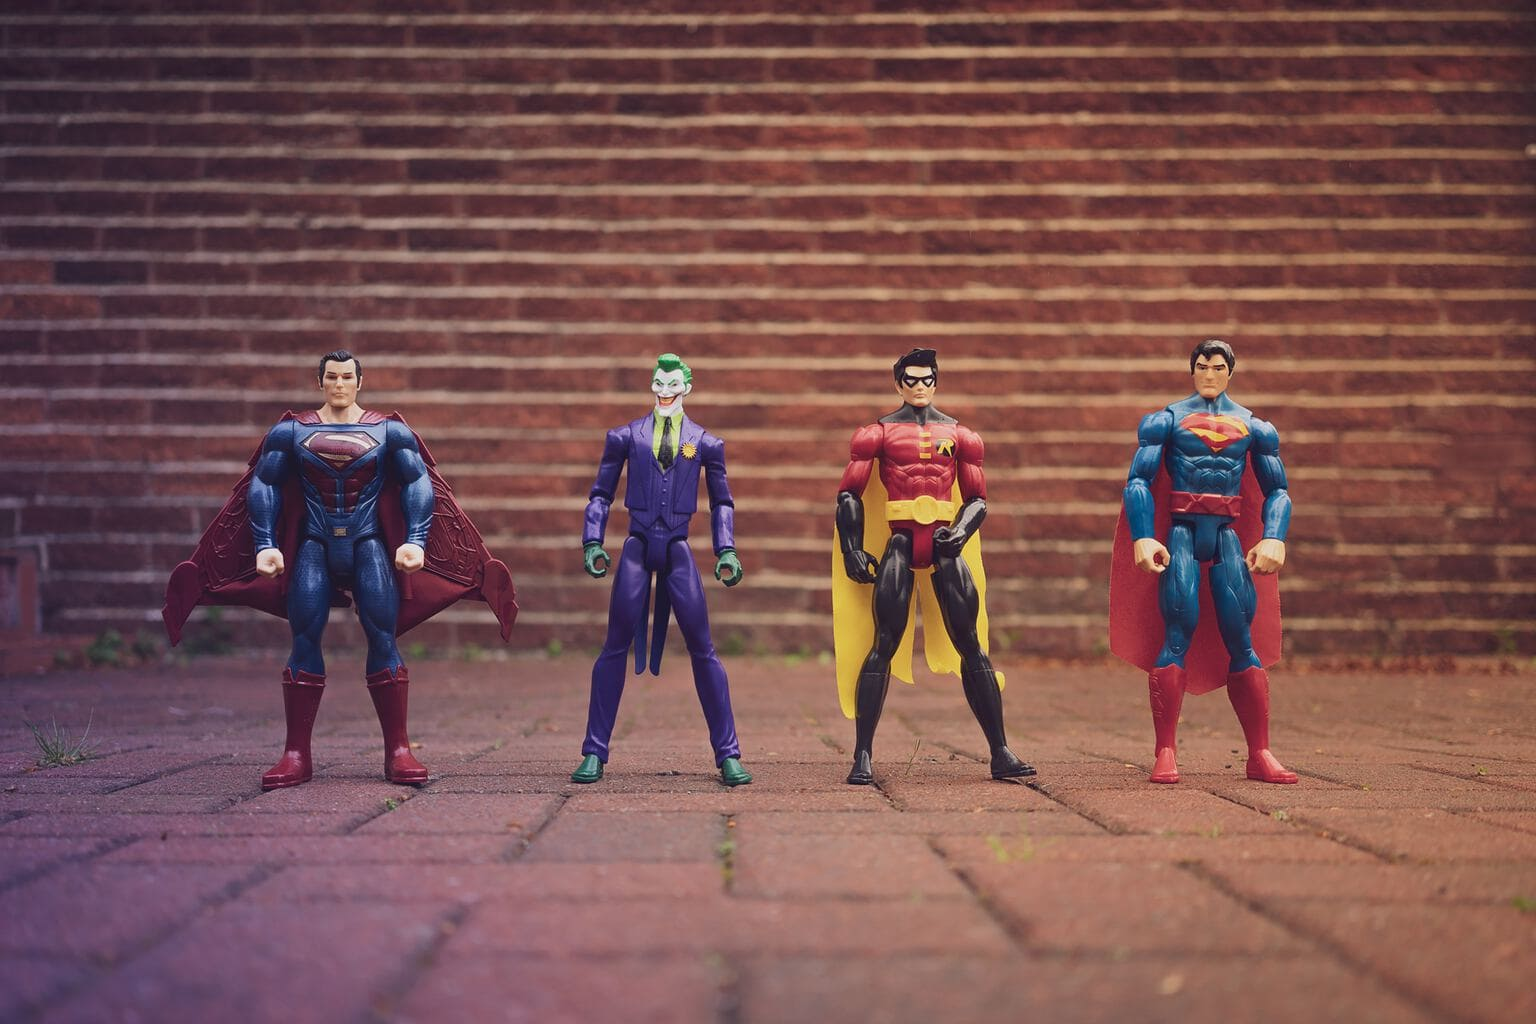 Four Superhero Action Pieces